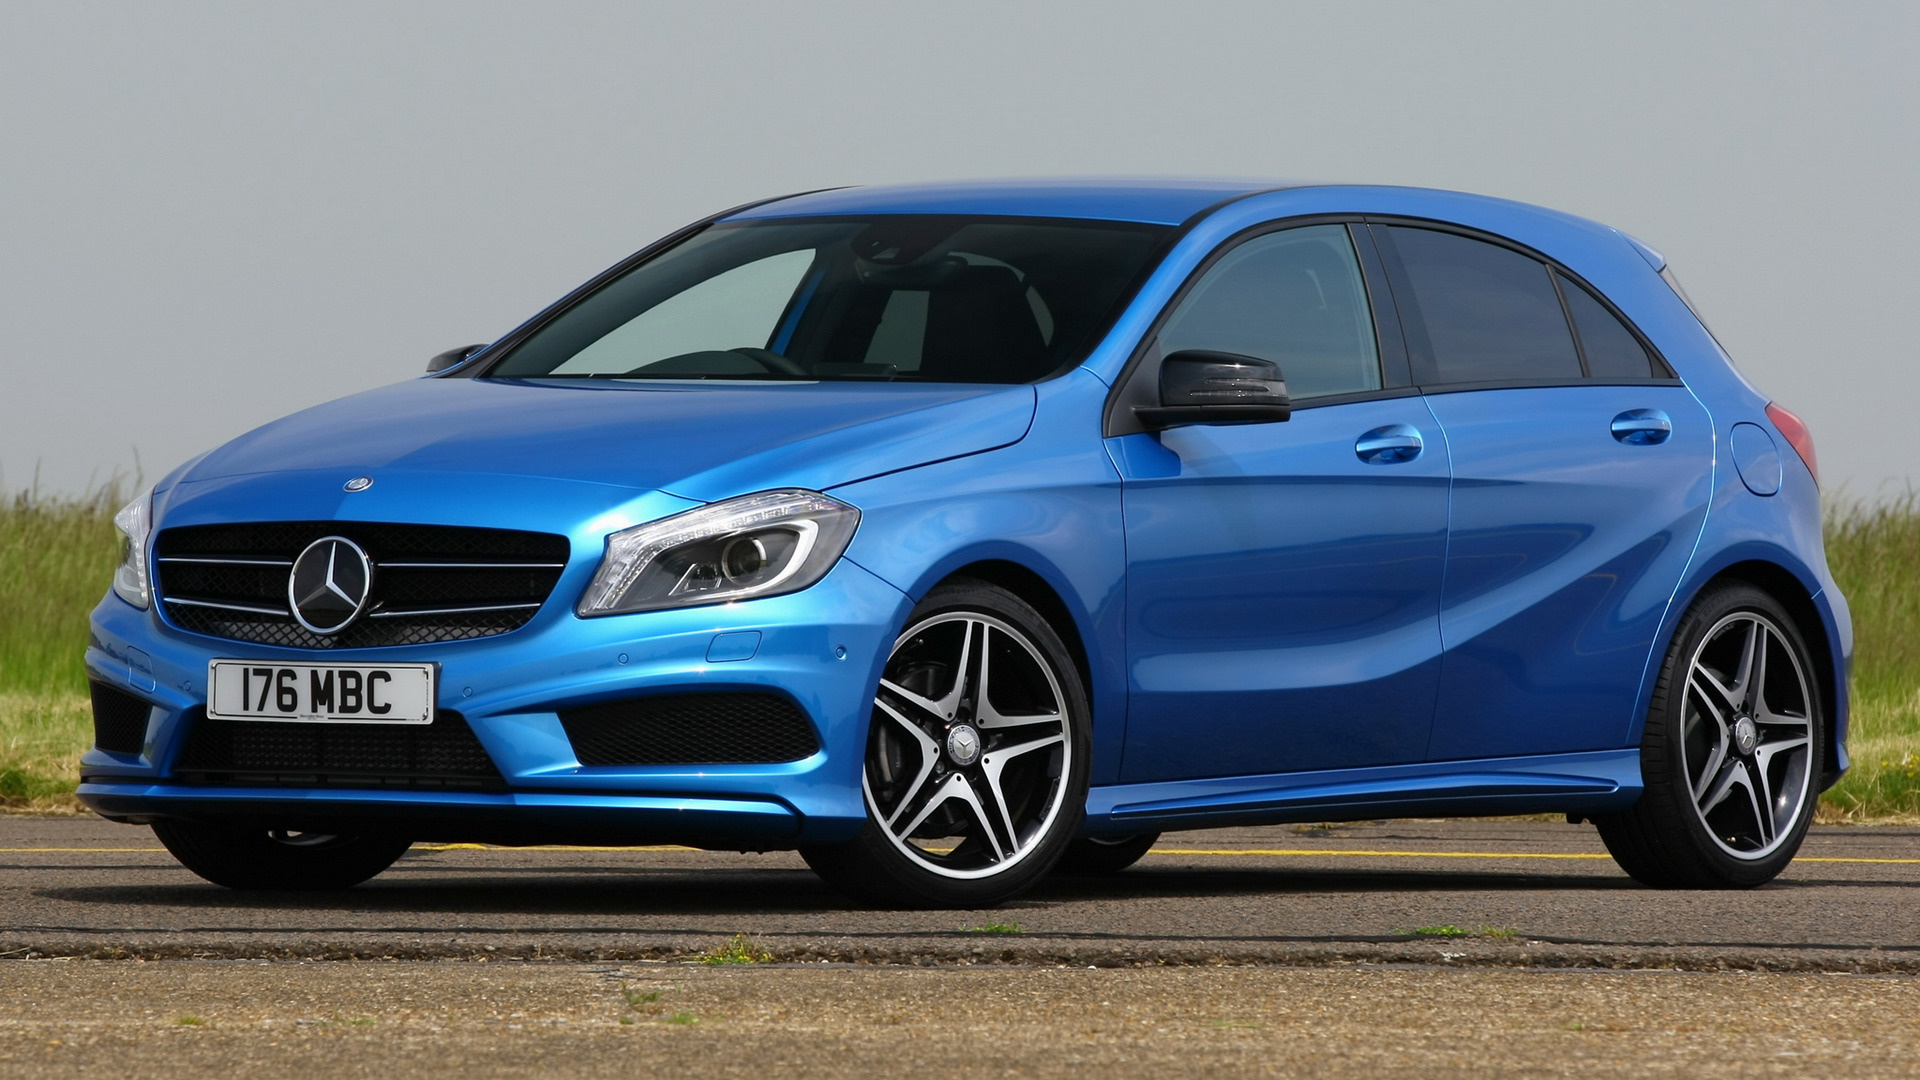 mercedes benz a class amg sport 2012 uk wallpapers and hd images car pixel. Black Bedroom Furniture Sets. Home Design Ideas